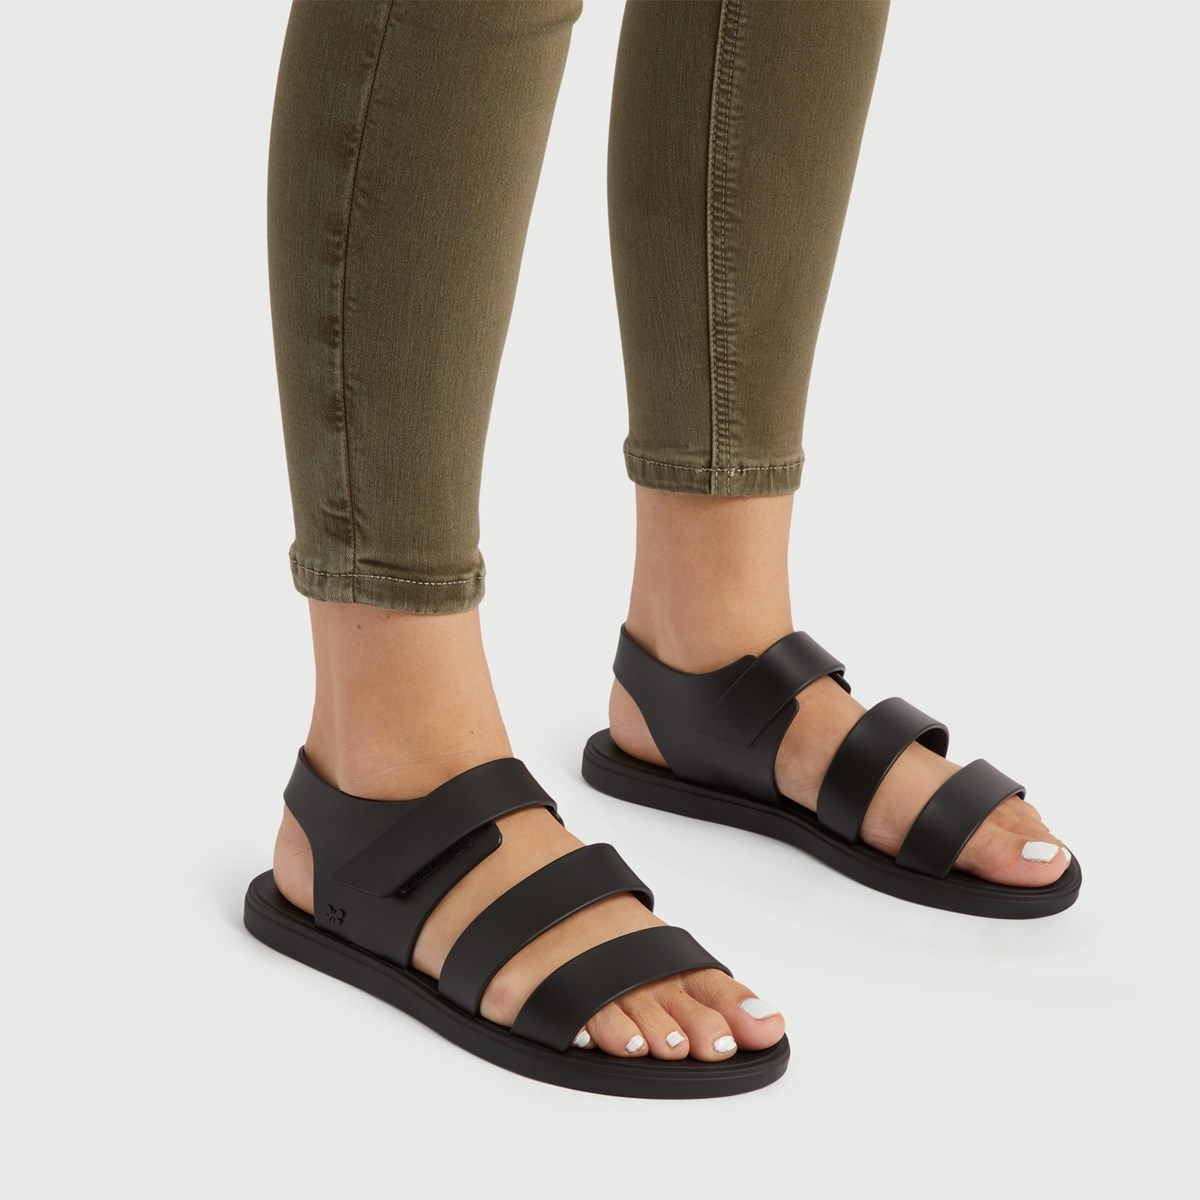 Women's Athena Sandals in Black